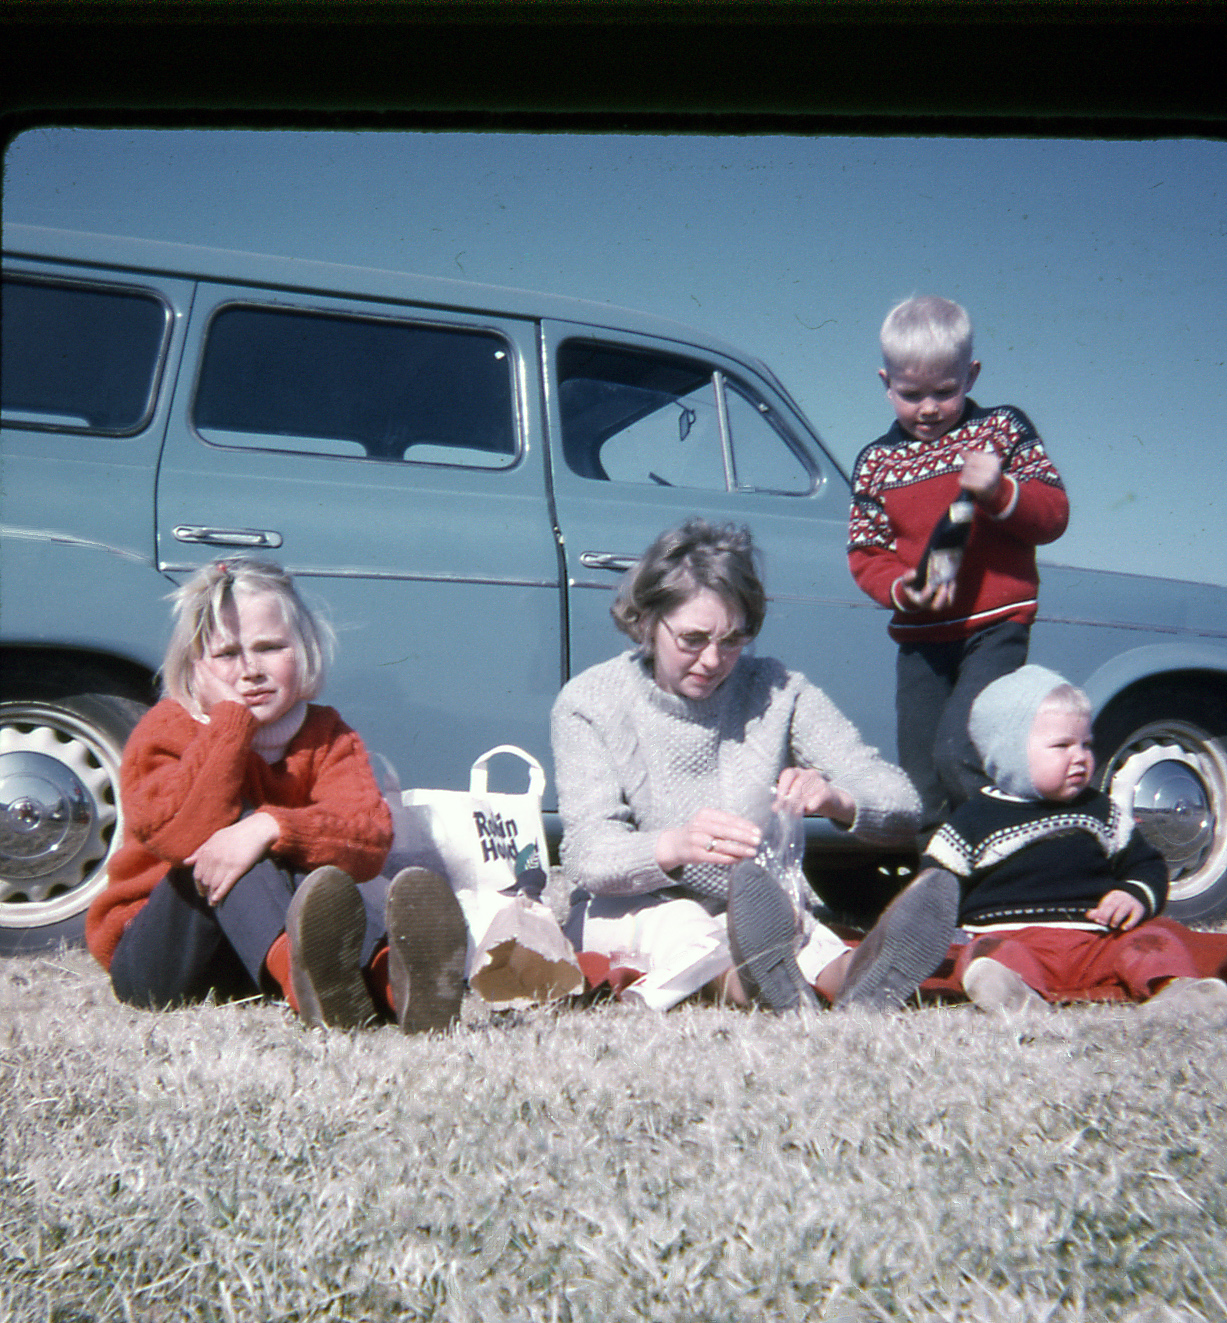 A road trip with the family - everybody in homemade knitted sweaters